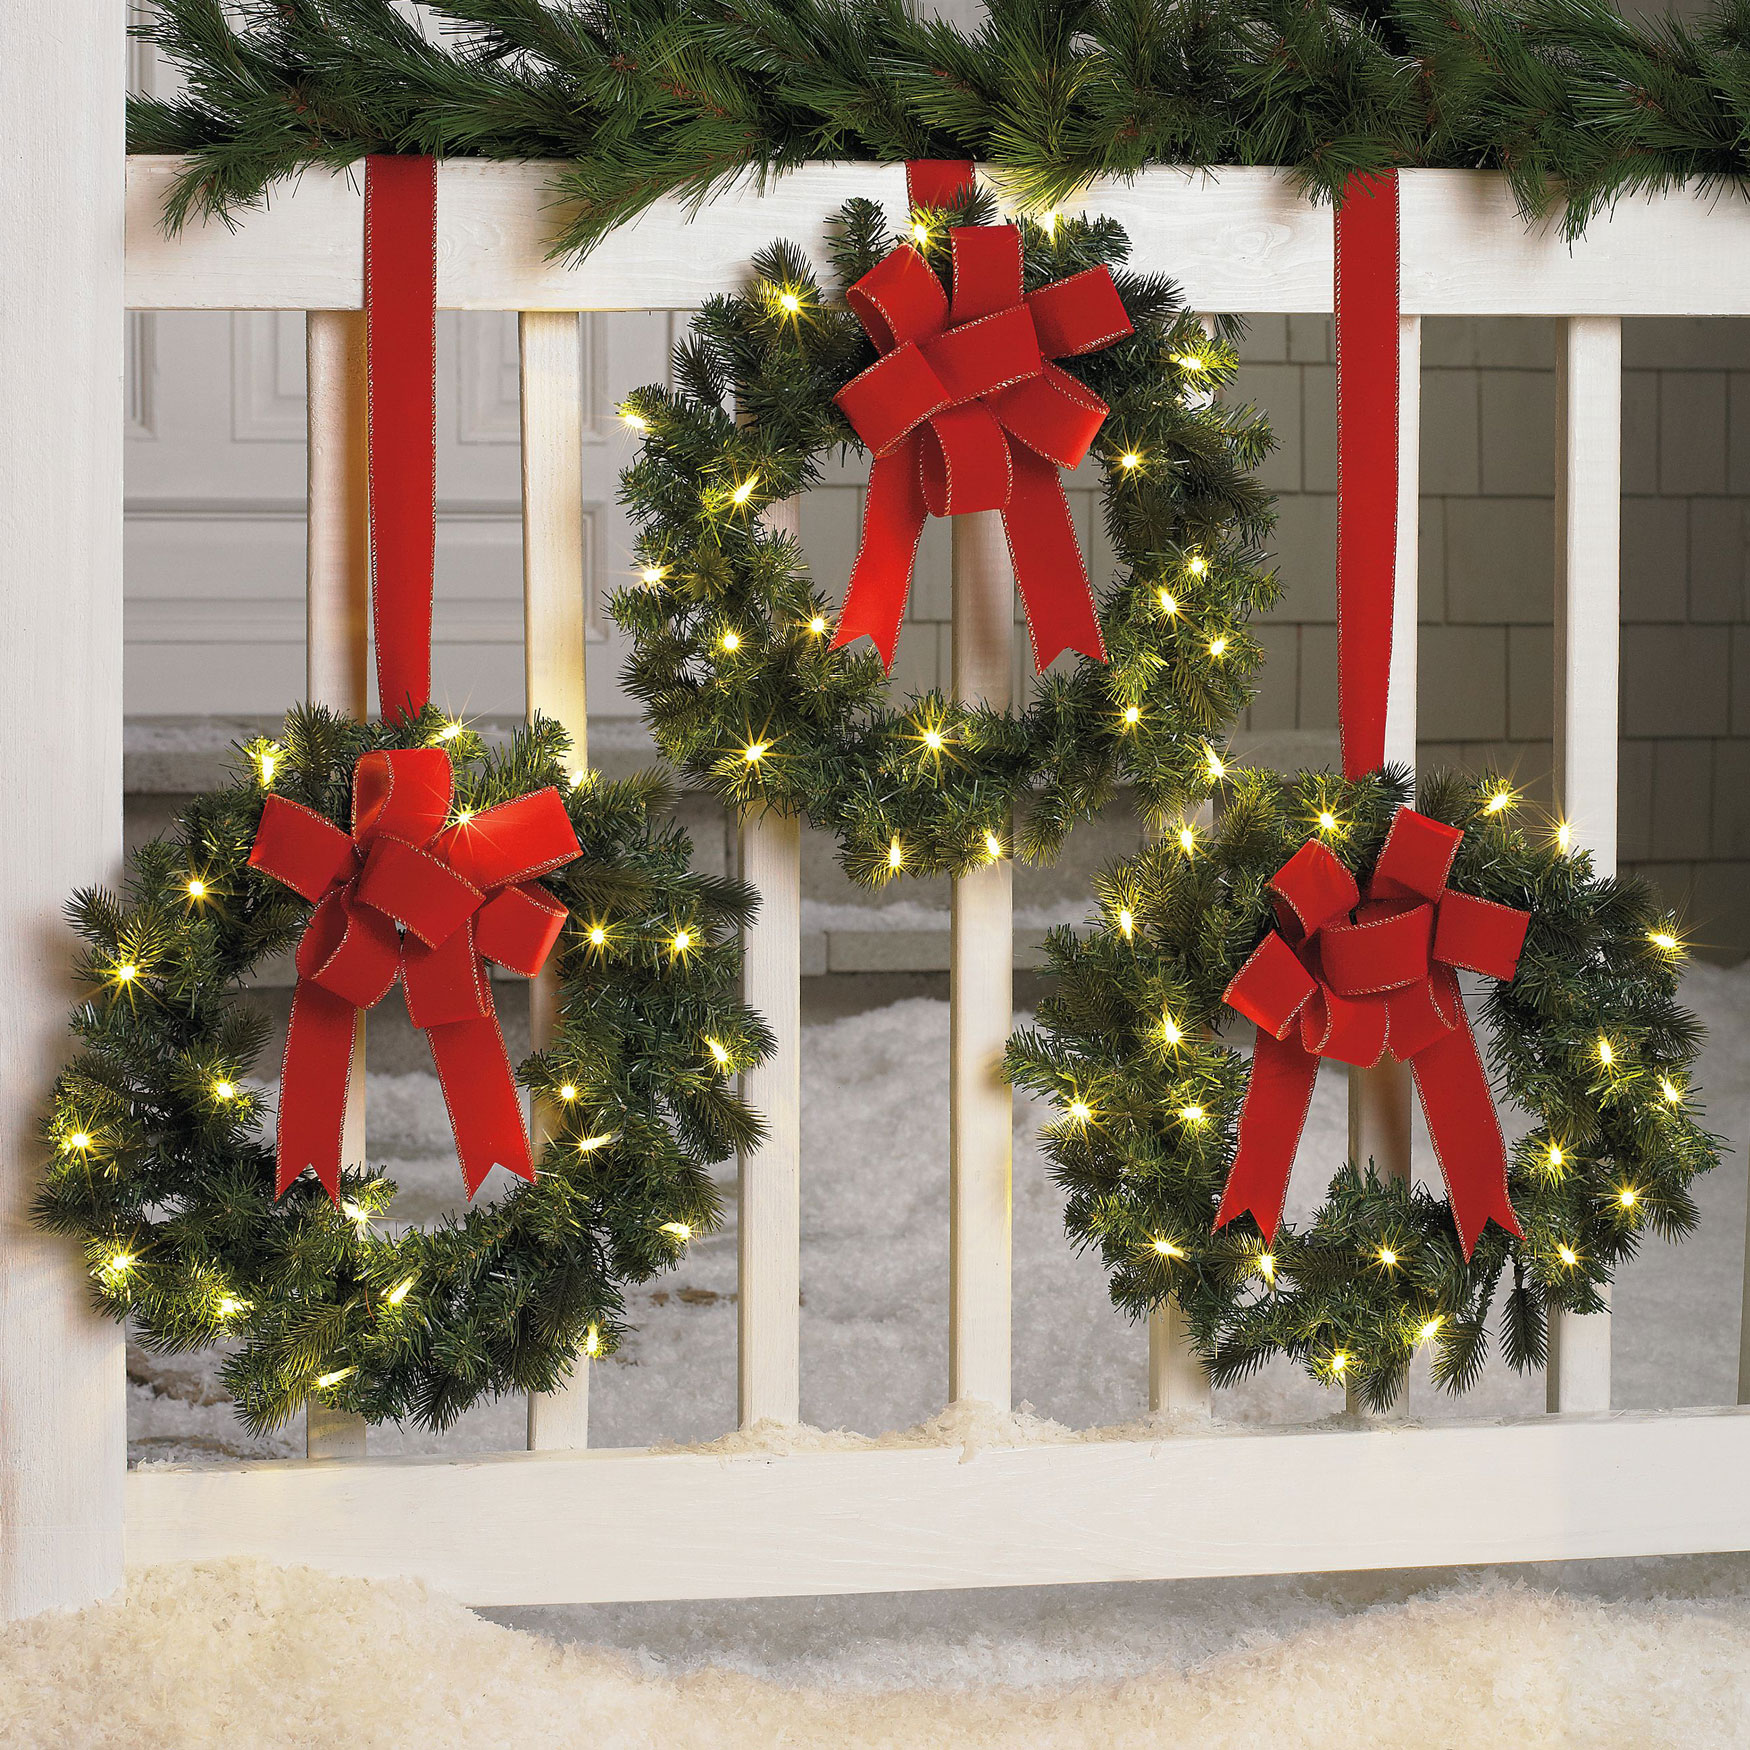 50 Best Outdoor Christmas Decorations For 2018: large outdoor christmas decorations to make